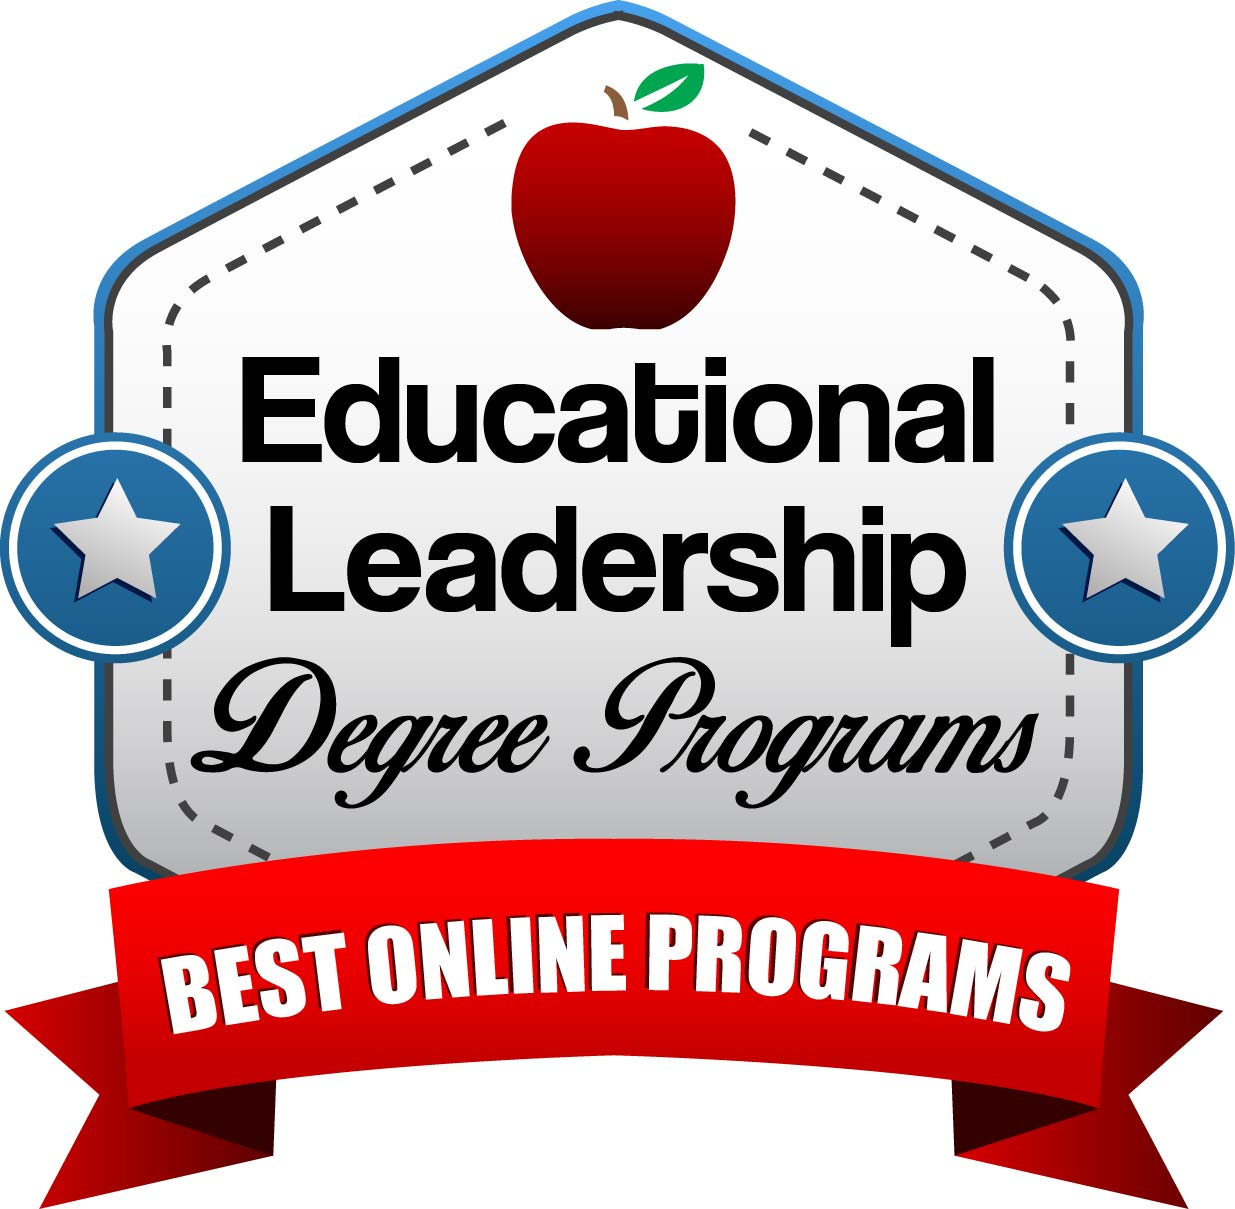 Online ed d programs without dissertation doctoral